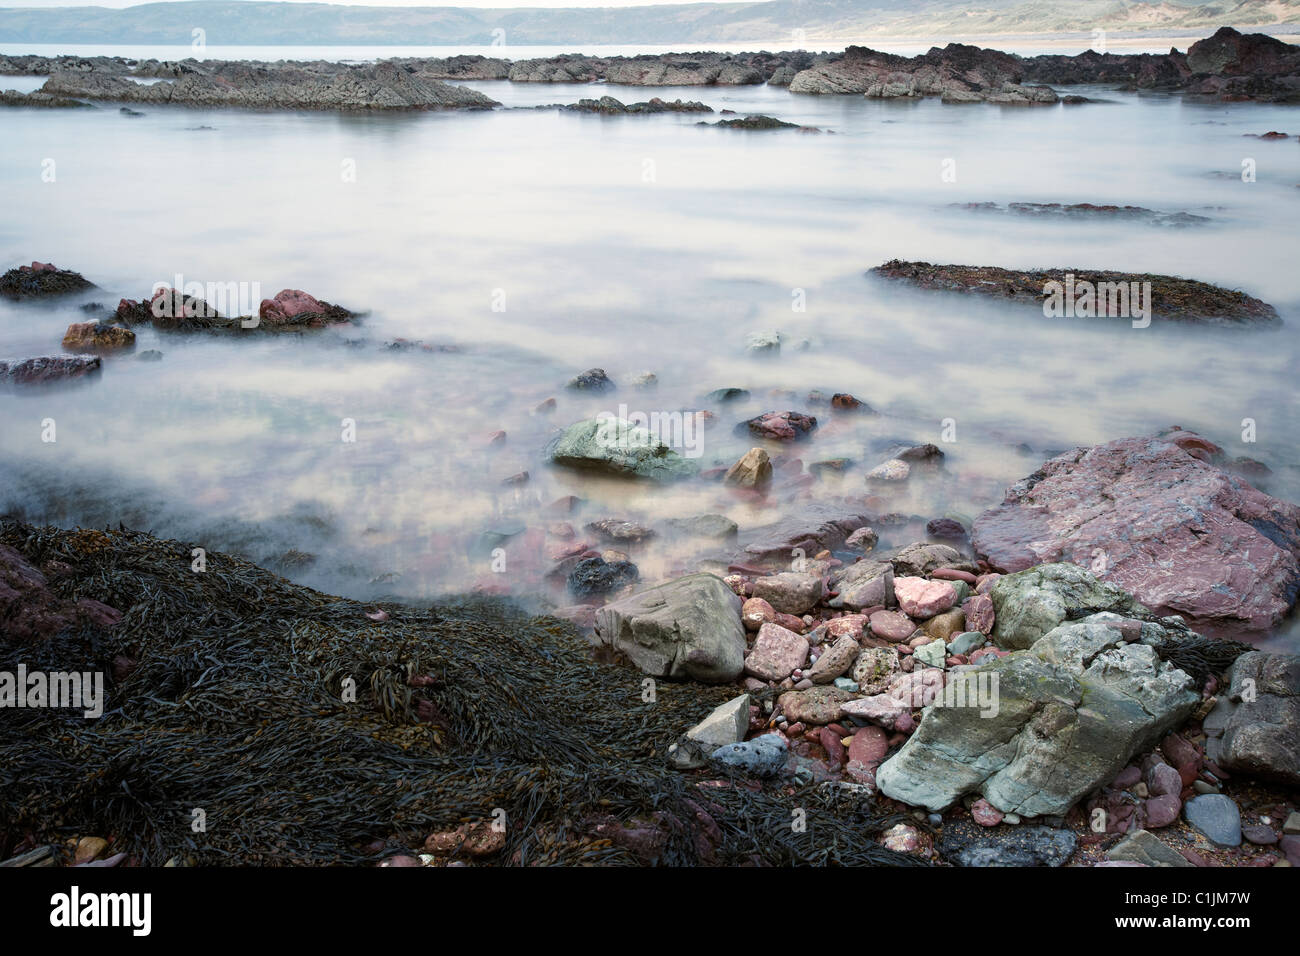 Rising tide, Freshwater West Bay, Pembrokeshire, Wales, UK Stock Photo